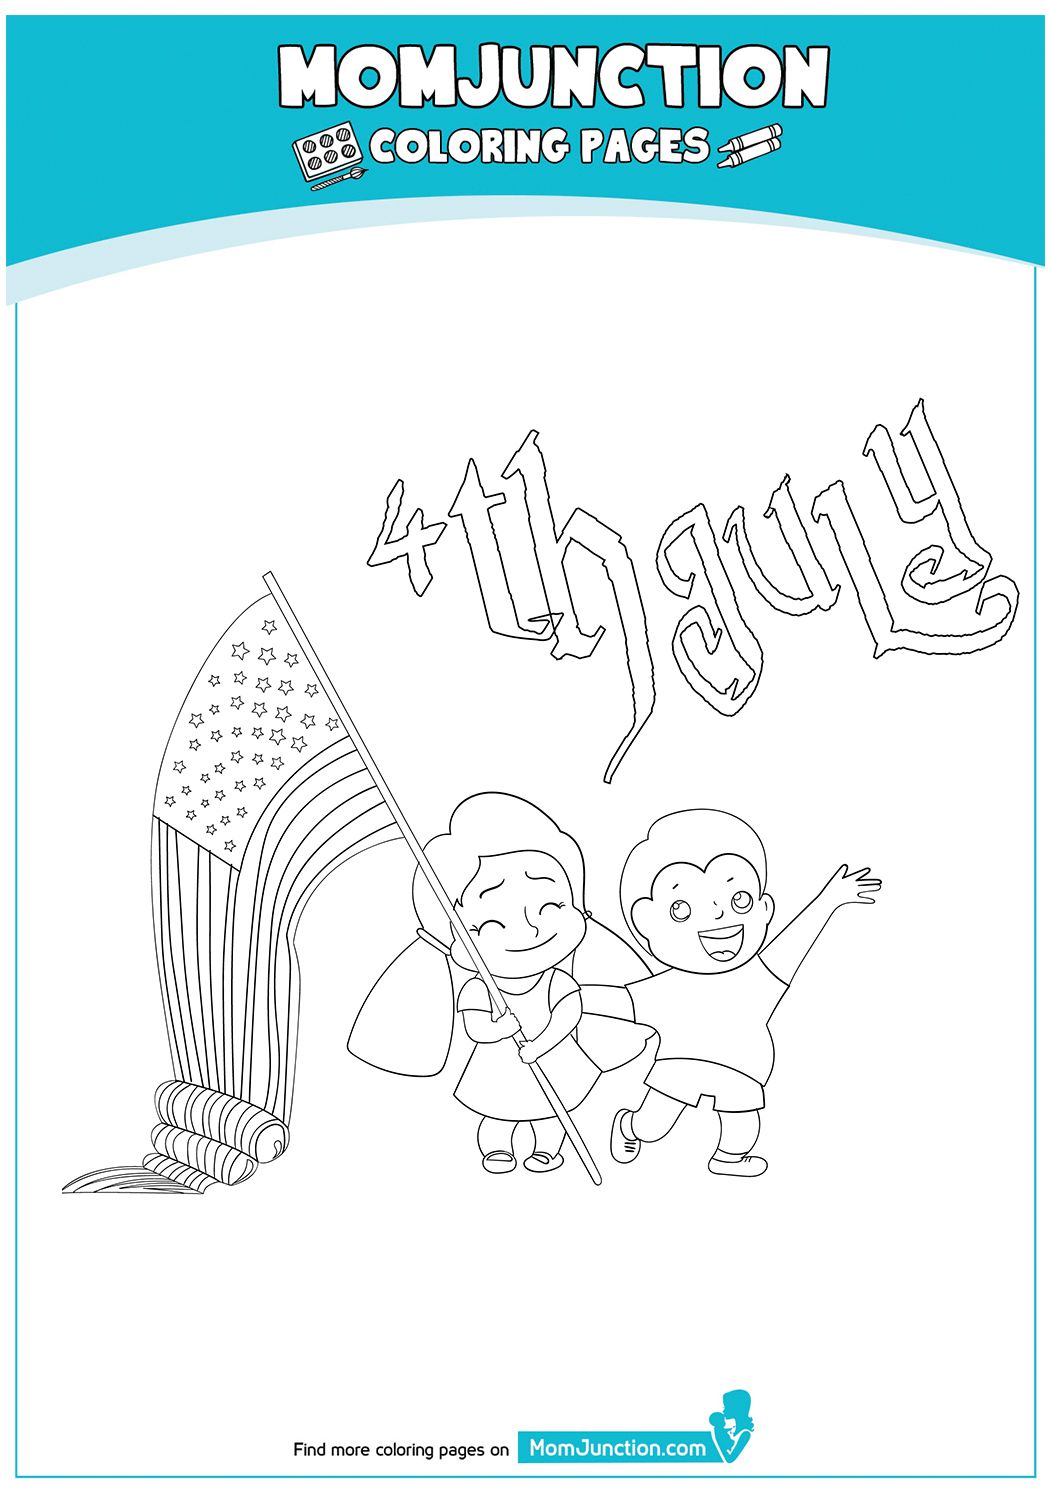 Independence Day Sign 17 Coloring Pages Coloring Pages For Kids Free Coloring Pages [ 1500 x 1050 Pixel ]